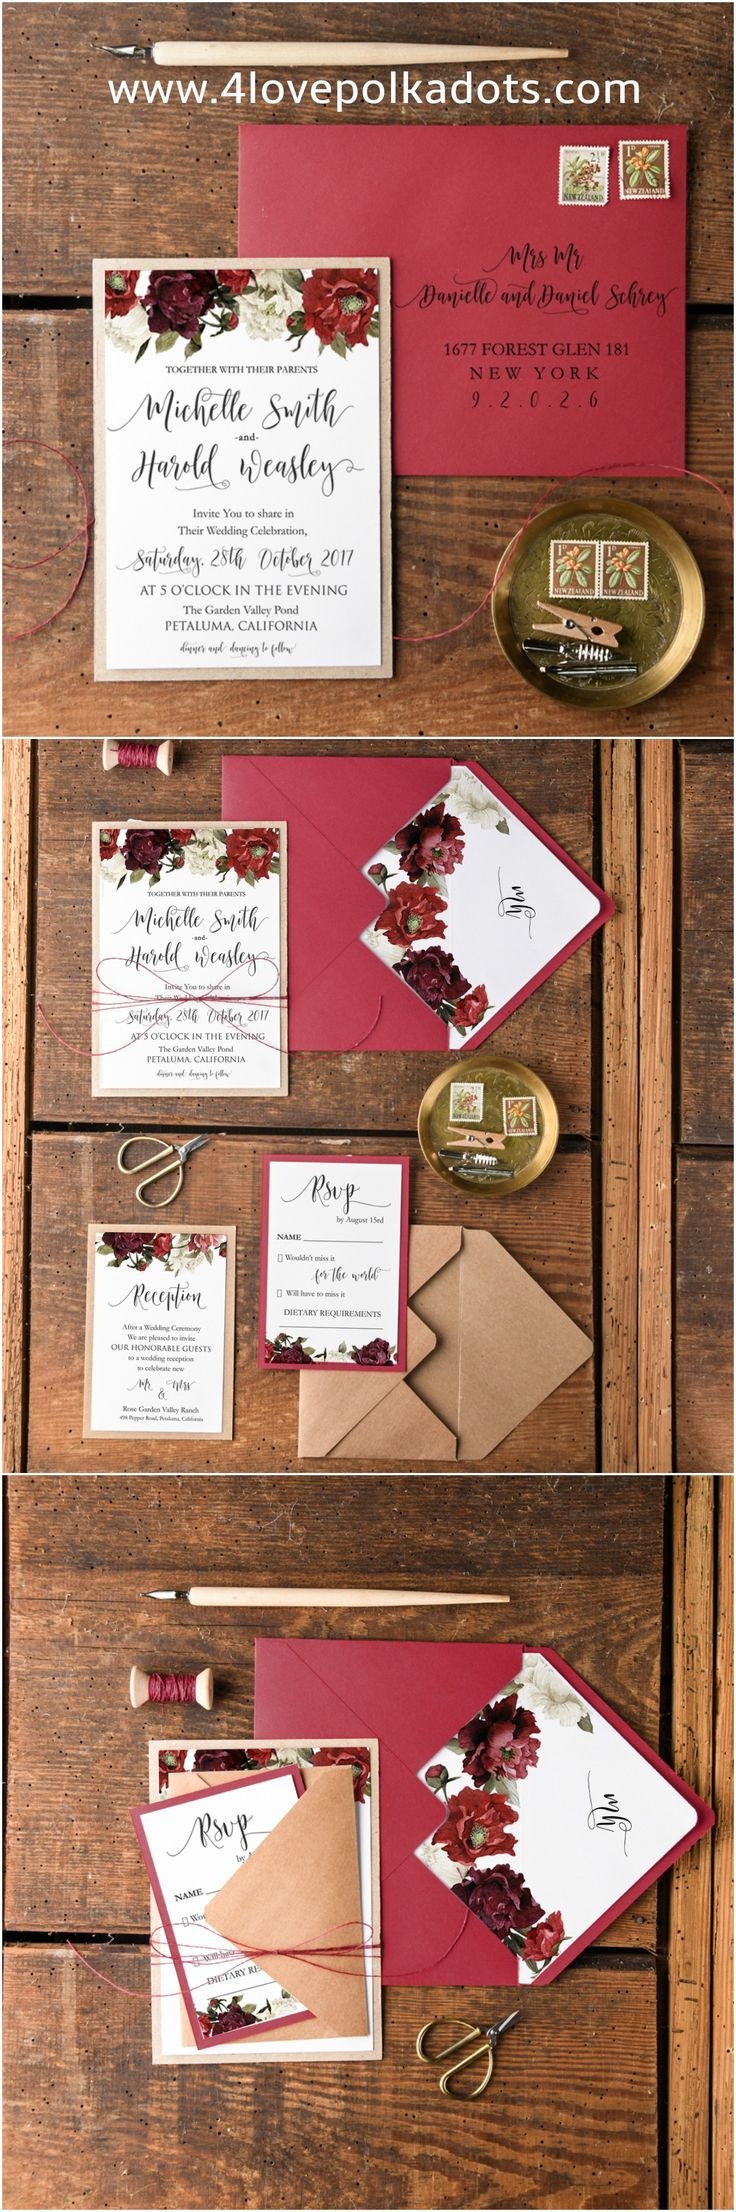 84 Best Wedding Invitations Images By Meranda Townsend On Pinterest